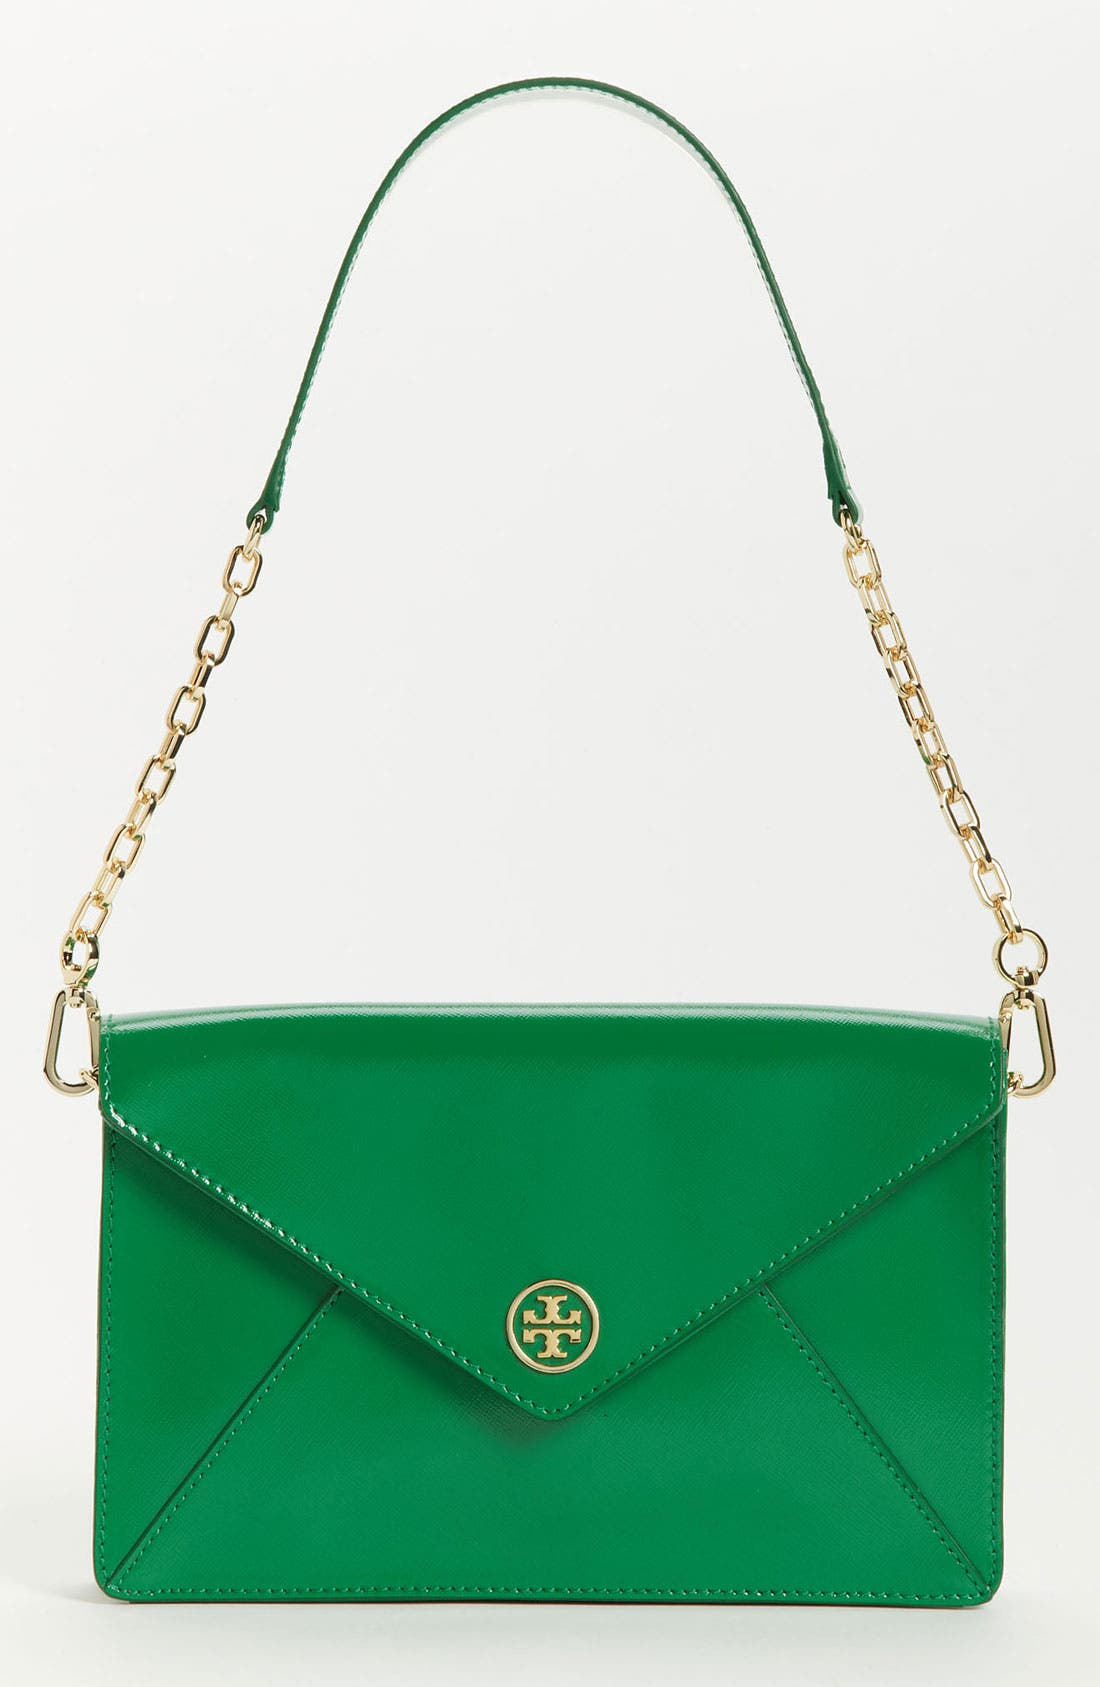 Alternate Image 1 Selected - Tory Burch 'Robinson' Patent Saffiano Leather Envelope Clutch